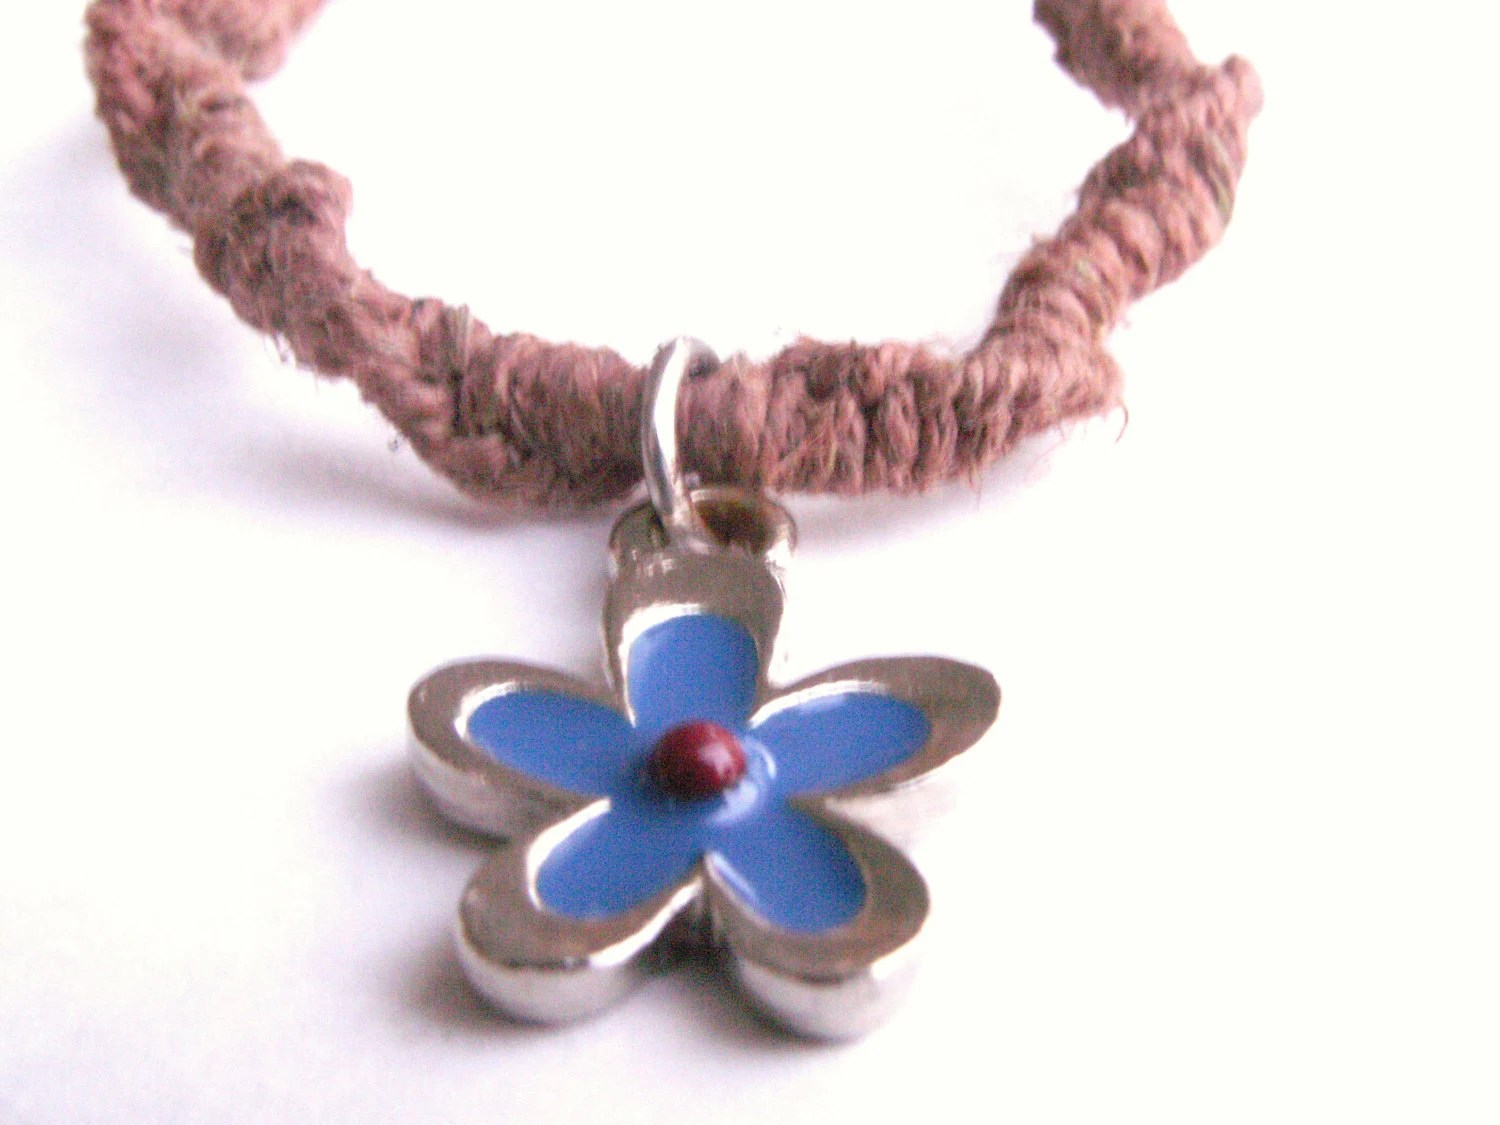 Brown Hemp Bracelet with Blue and Red Flower Pendant - StoopidHemp